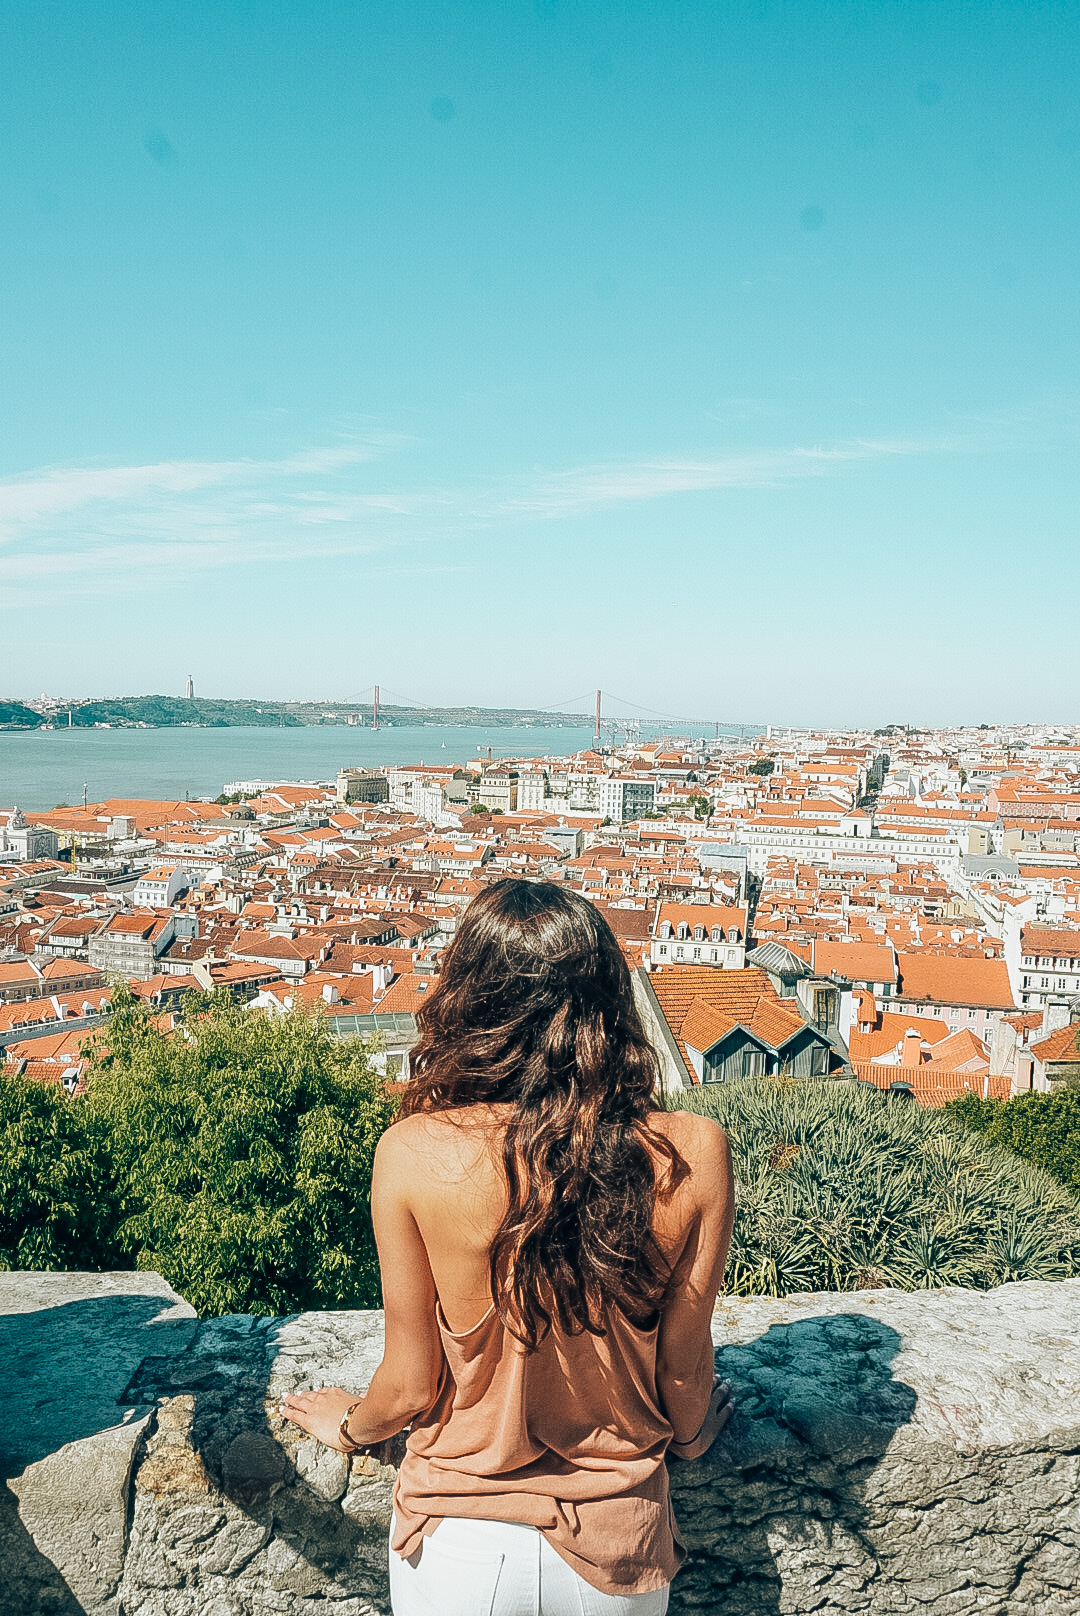 A sight you can't miss in Lisbon - St George's Castle